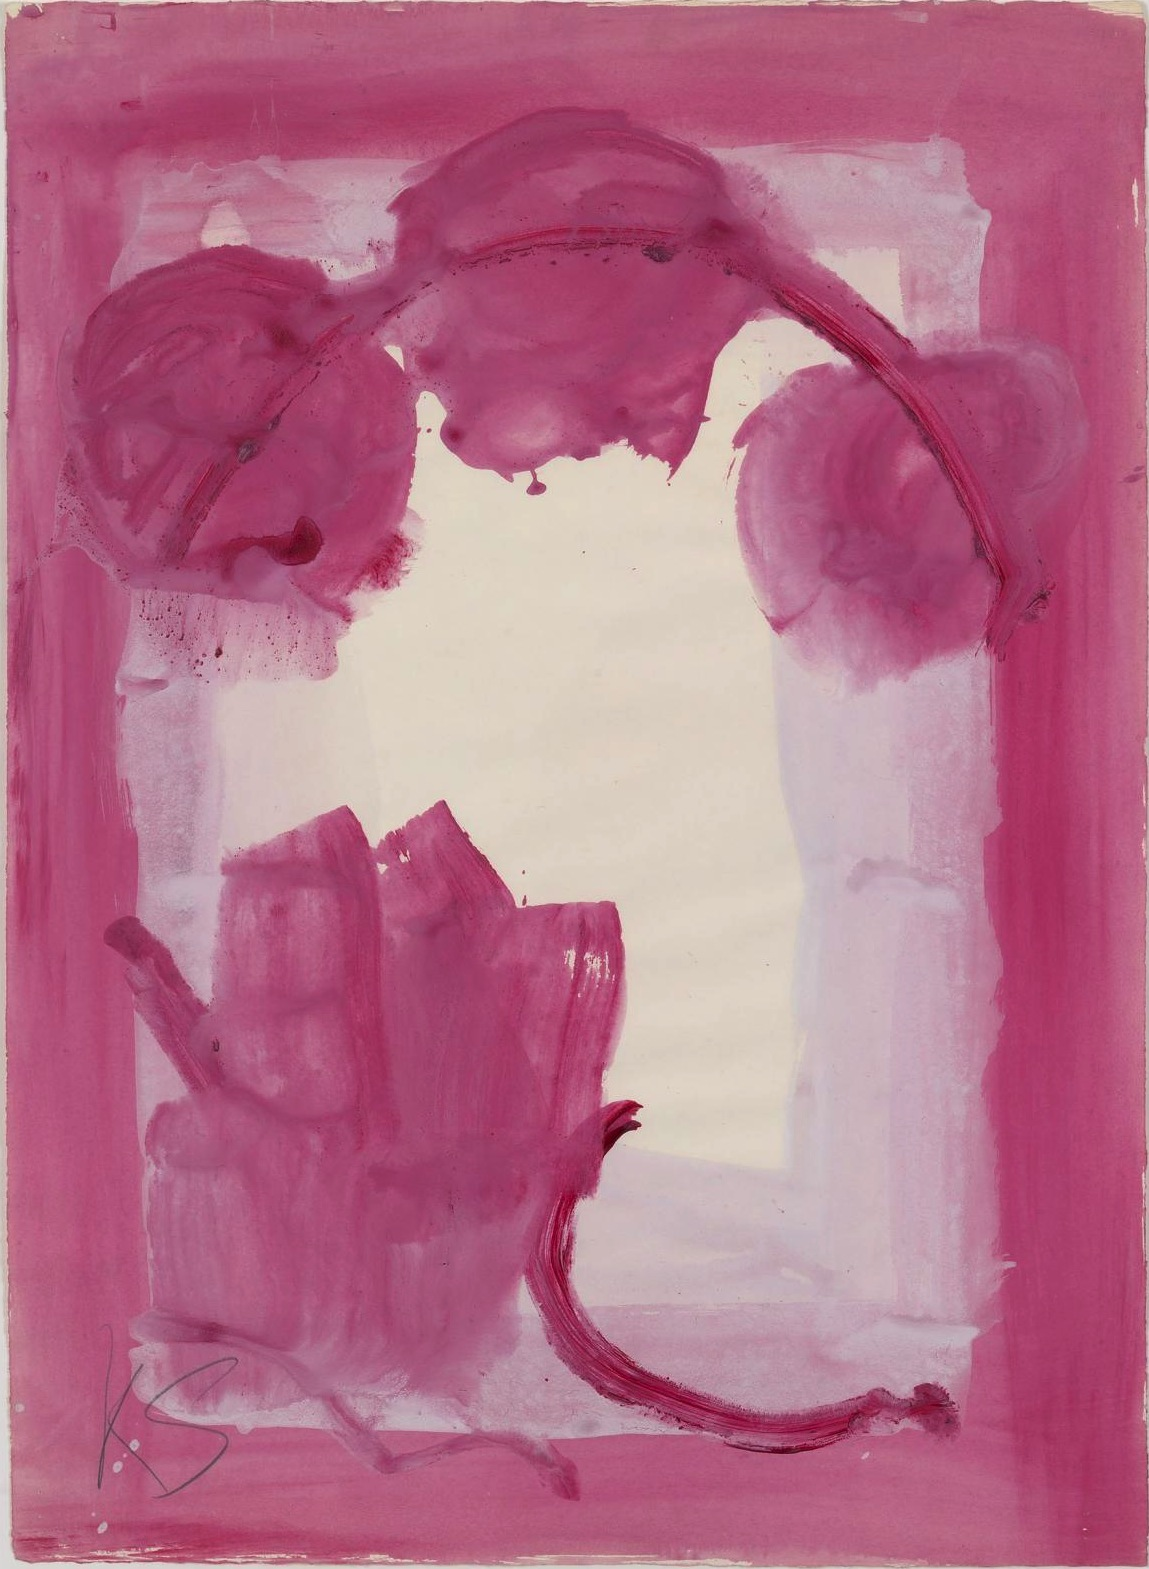 Kimber Smith, Untitled, 1976, gouache on paper, 26 x 19 inches (courtesy Modern